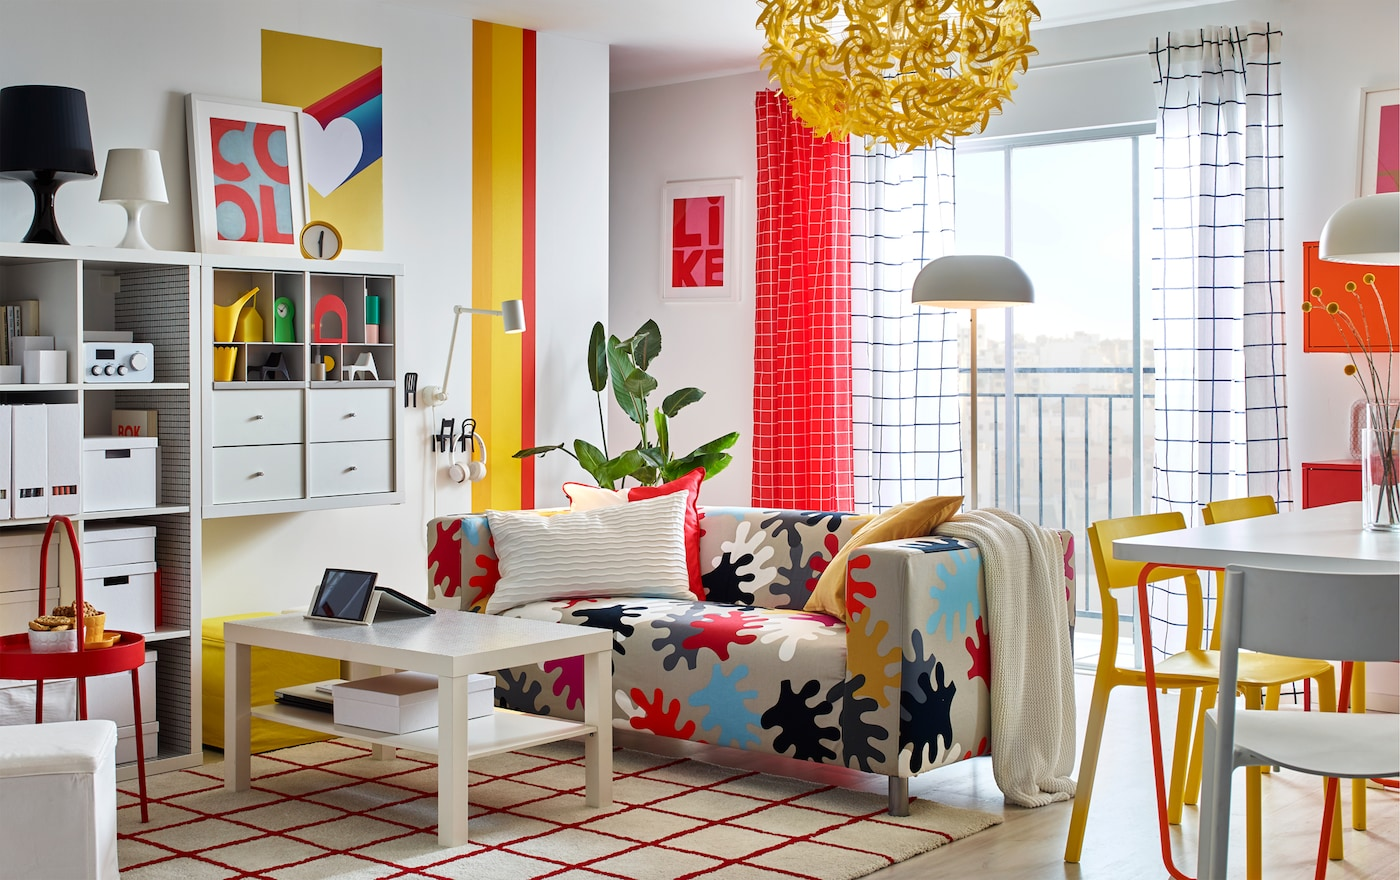 Classic IKEA furniture with a graphical twist - IKEA